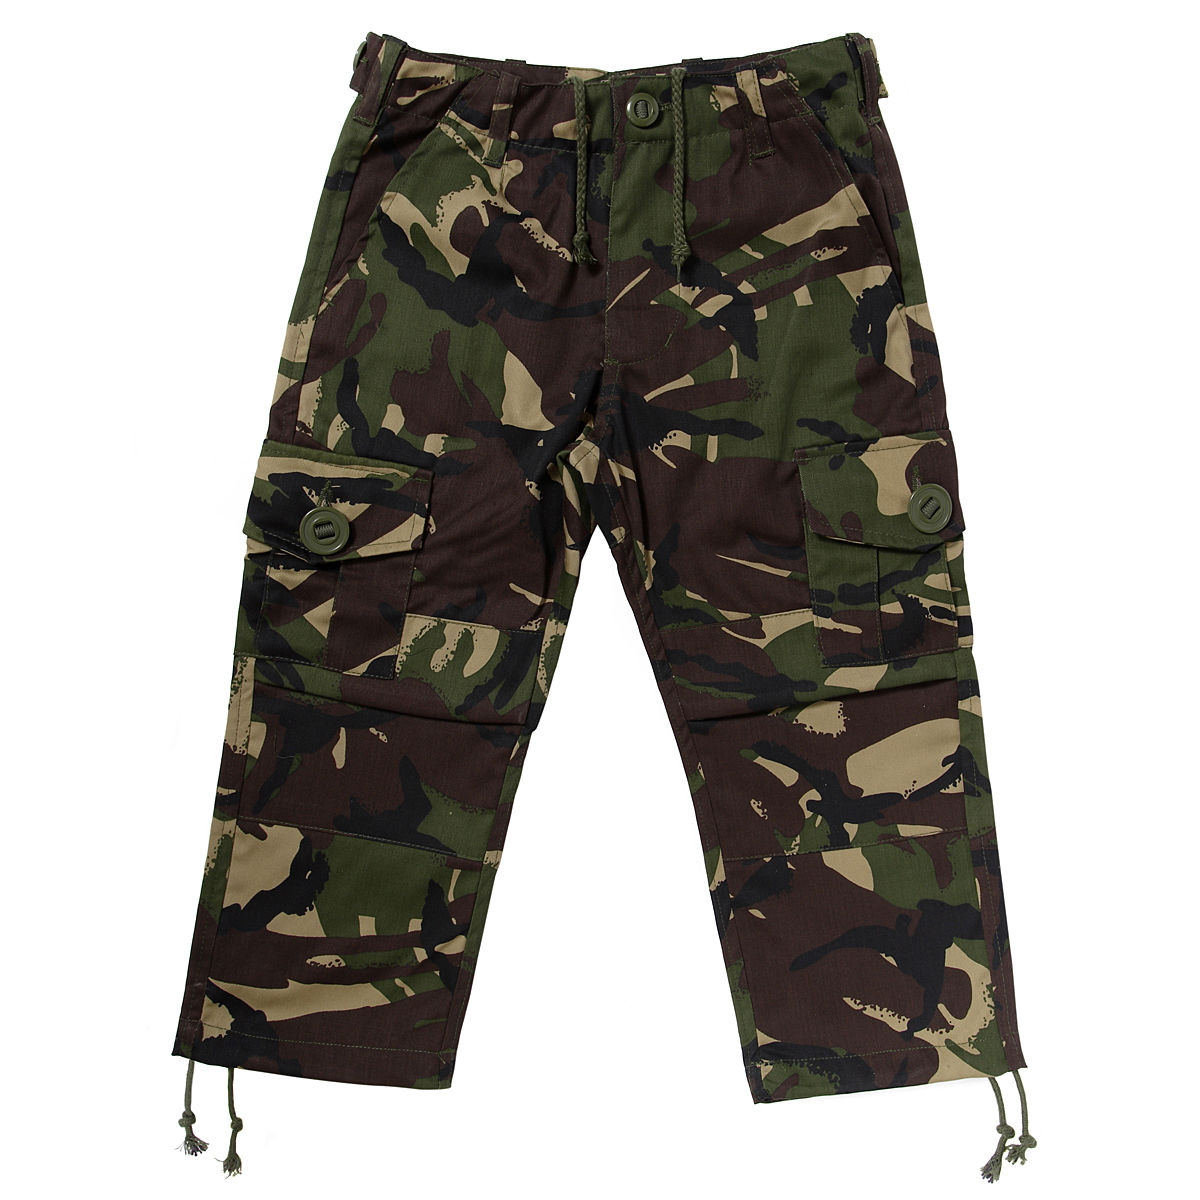 The kids camo pants are bdu pants made to look just like dads or moms! Our kids camo pants are available in a variety of solid and camouflage colors. The kids army fatigues have 6 cargo pockets, adjustable waist and drawstring bottoms.